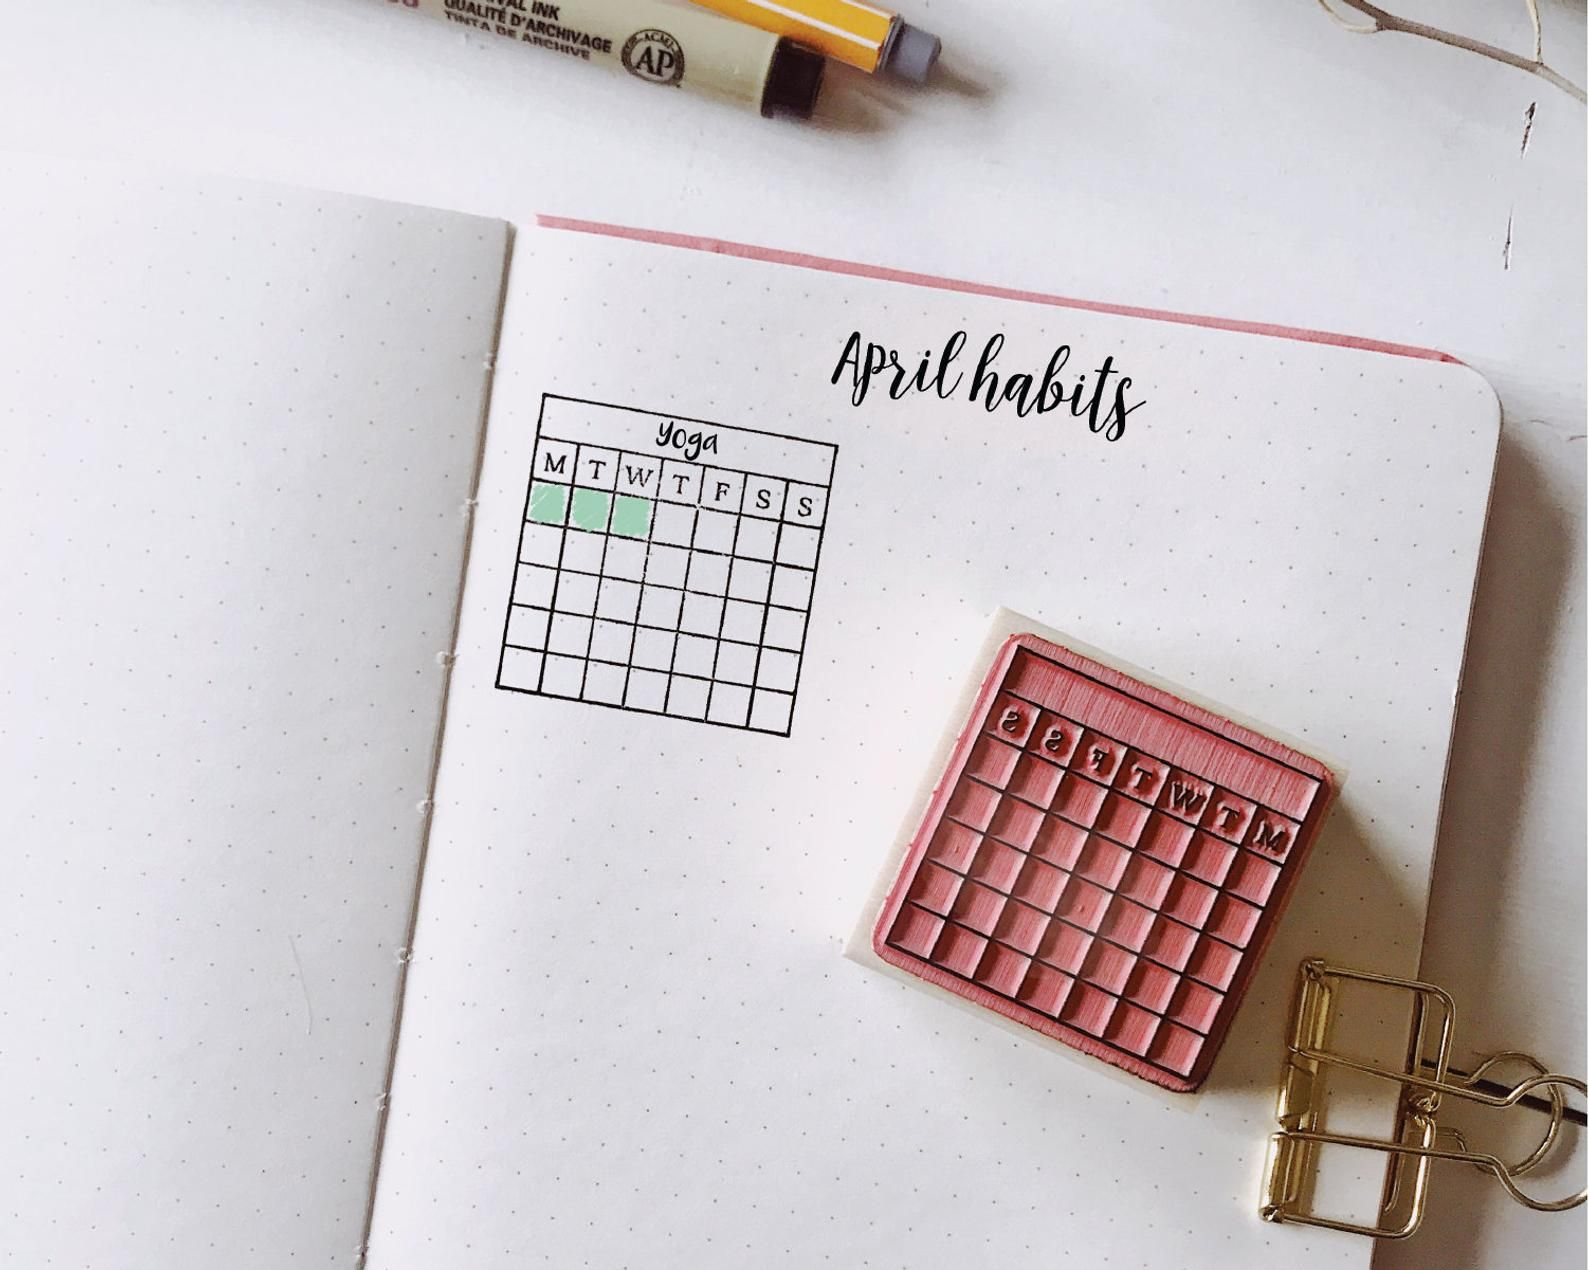 Bullet Journal Stamp Monday Start Monthly Habit Tracker Etsy In 2020 Calendar Stamps Bullet Journal Month Habit Tracker